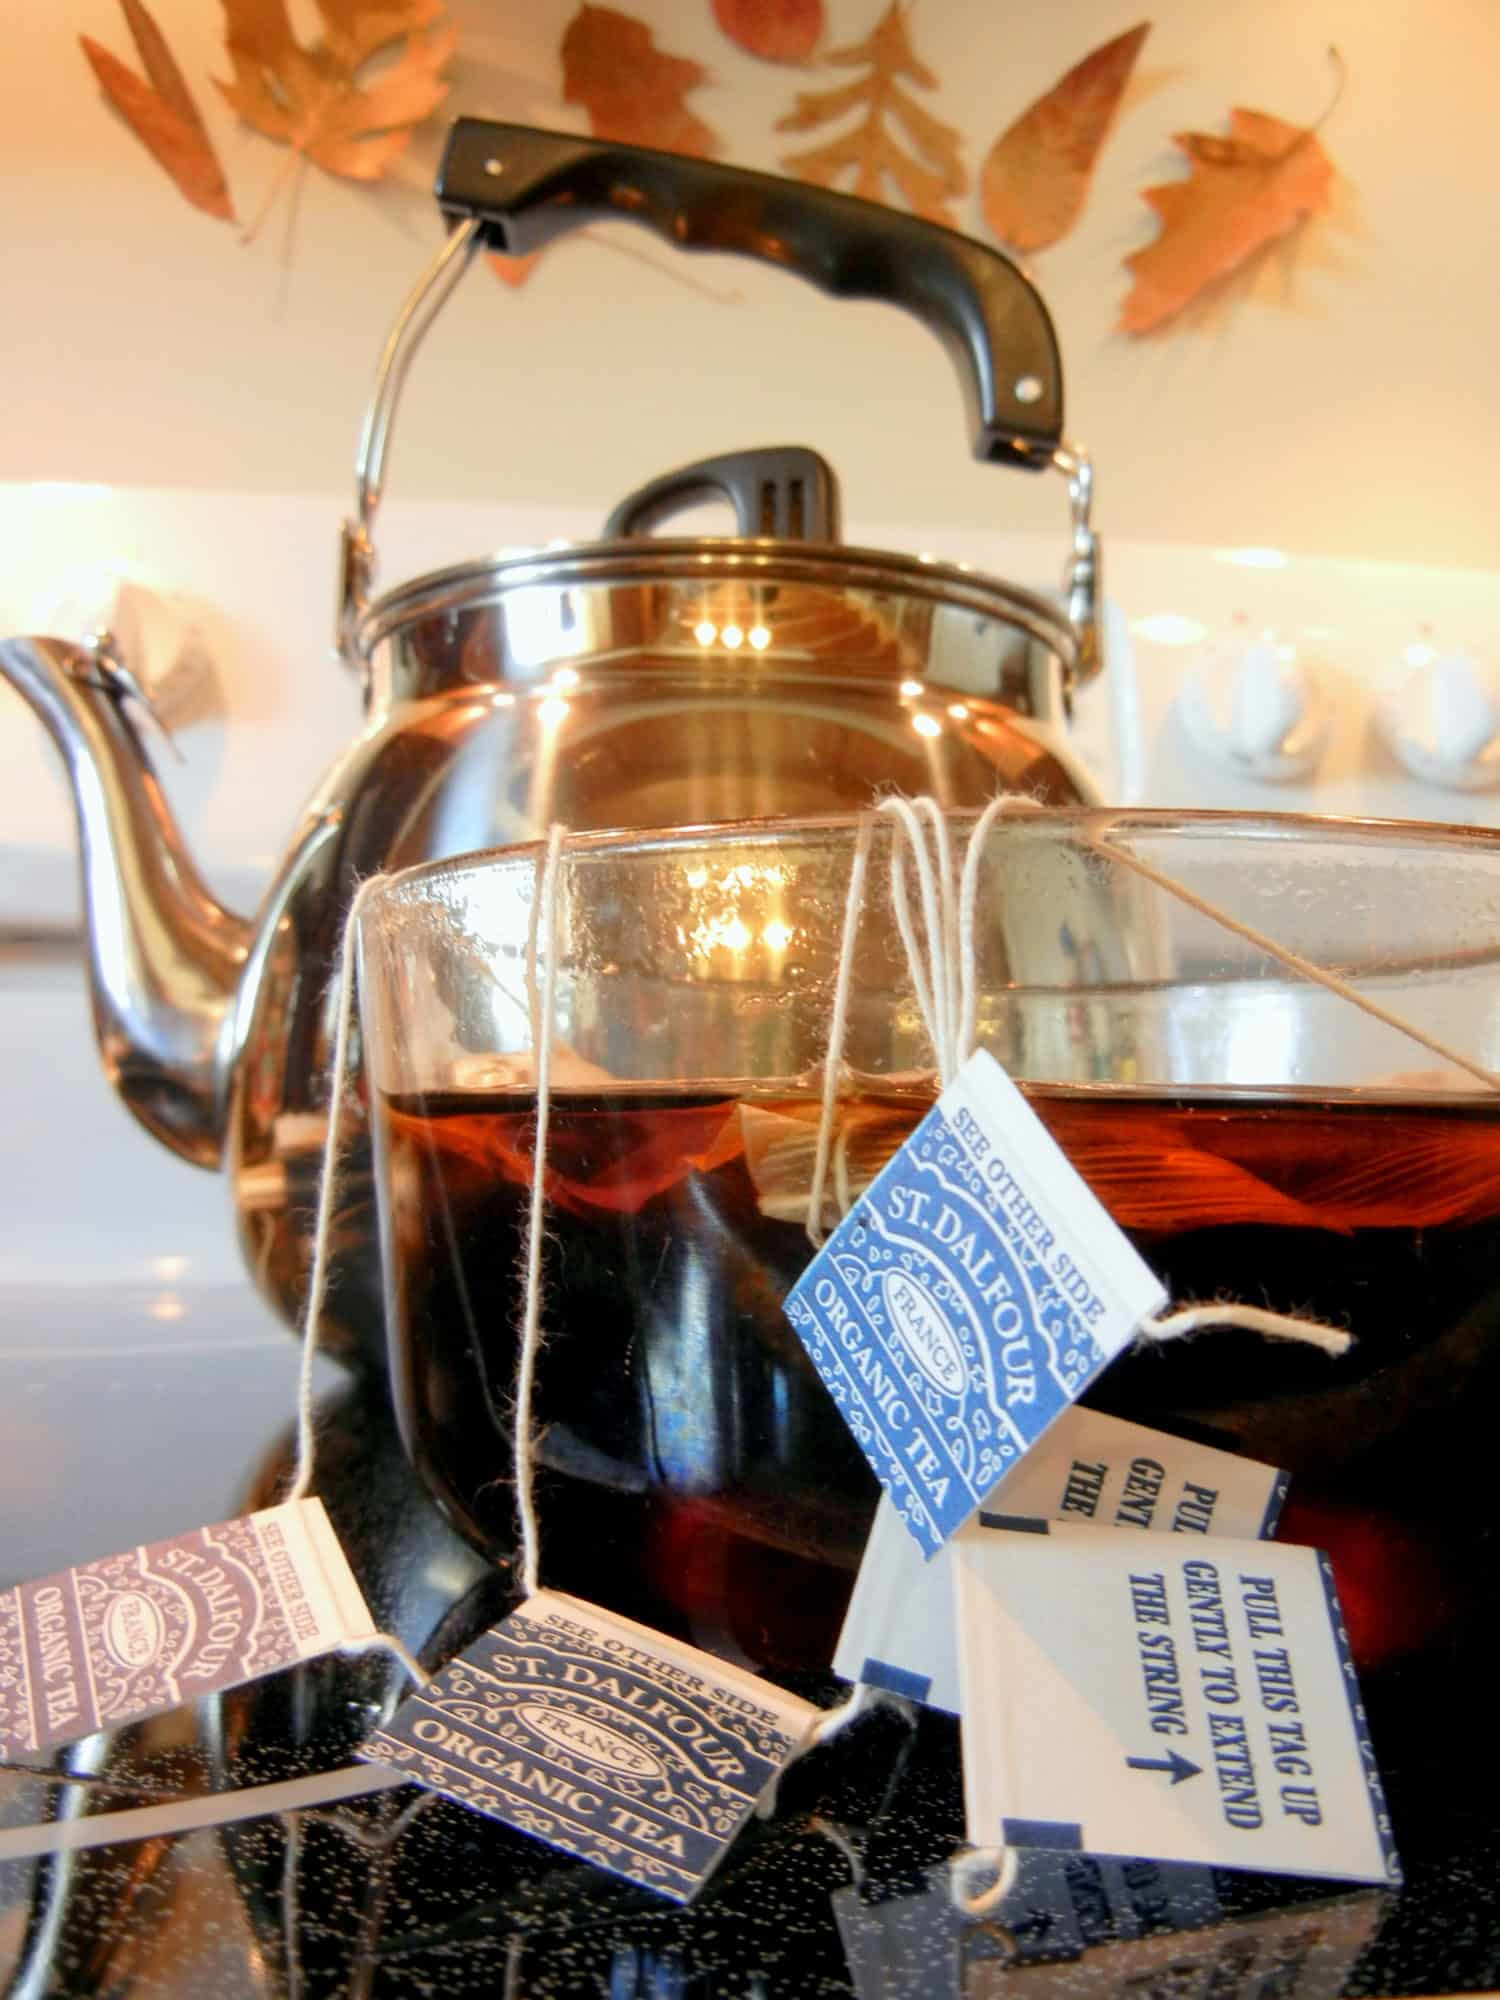 A Complete Beginner's Guide To Brewing Your Own Kombucha. steeping tea bags in boiling water